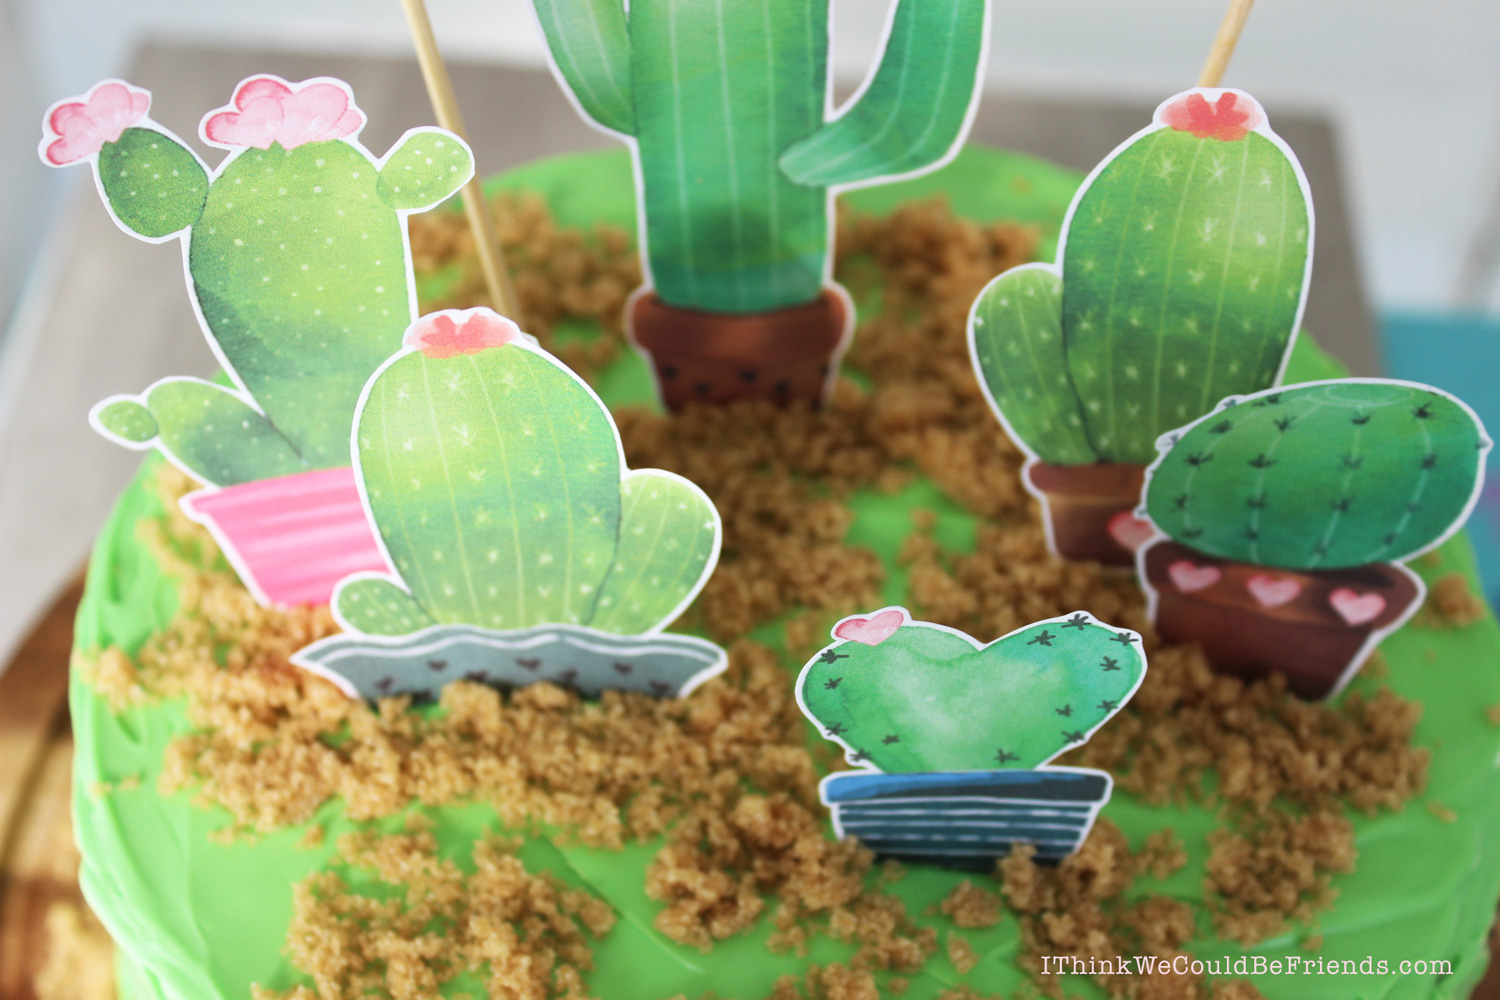 This Mother's Day Cactus Cake Topper is super EASY to make and FREE! What mom doesn't love that? You can put it on a homemade cake or store bought, just print, cut out the shapes, hot glue to skewer sticks and decorate! #mothers #day #cake #diy #decoration #topper #free #printable #cactus #succulent #easy